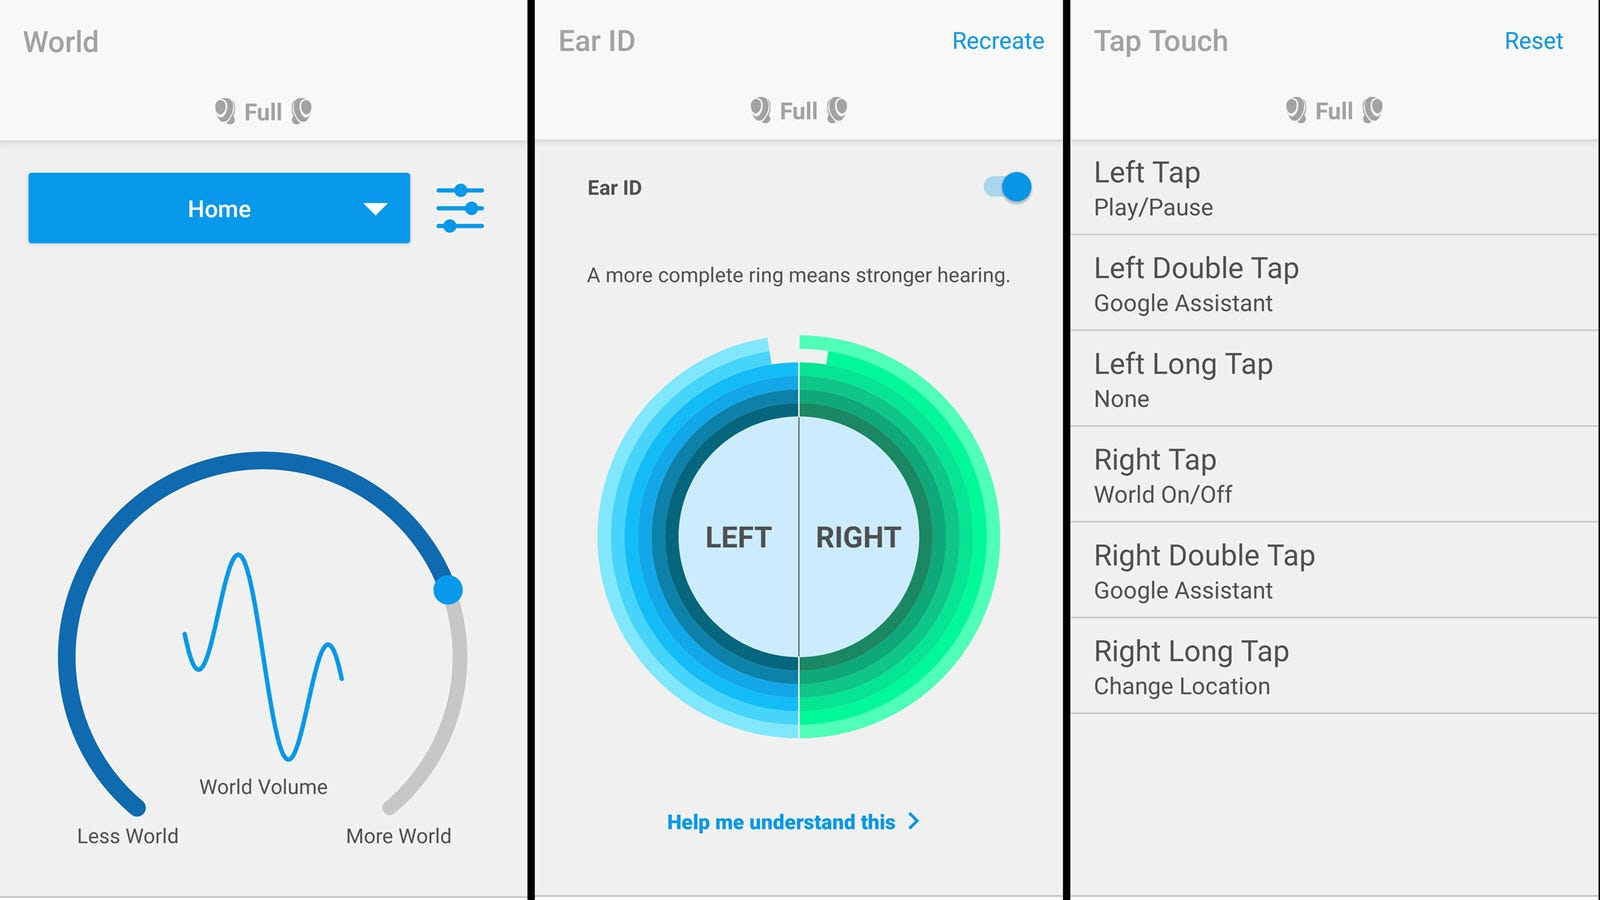 Images of the Nuheara app showing hearing profiles and tap controls.